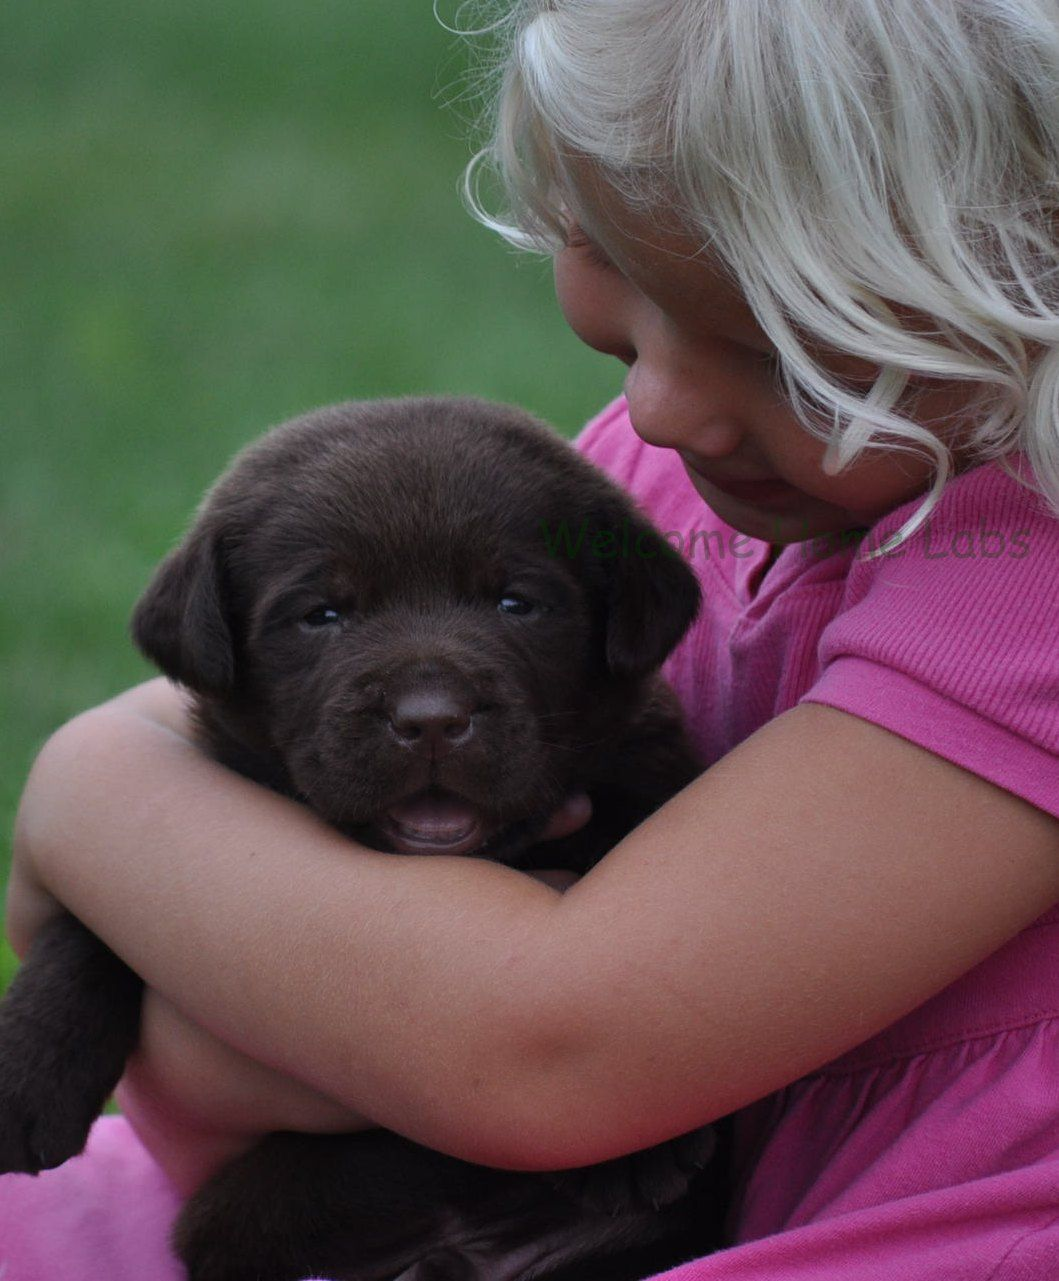 Labrador Puppies For Sale Mn Lab Puppies Minneapolis Lab Pups Mn Welcome Home Labs Located In Minnesota Labrador Puppies For Sale Lab Puppies Labrador